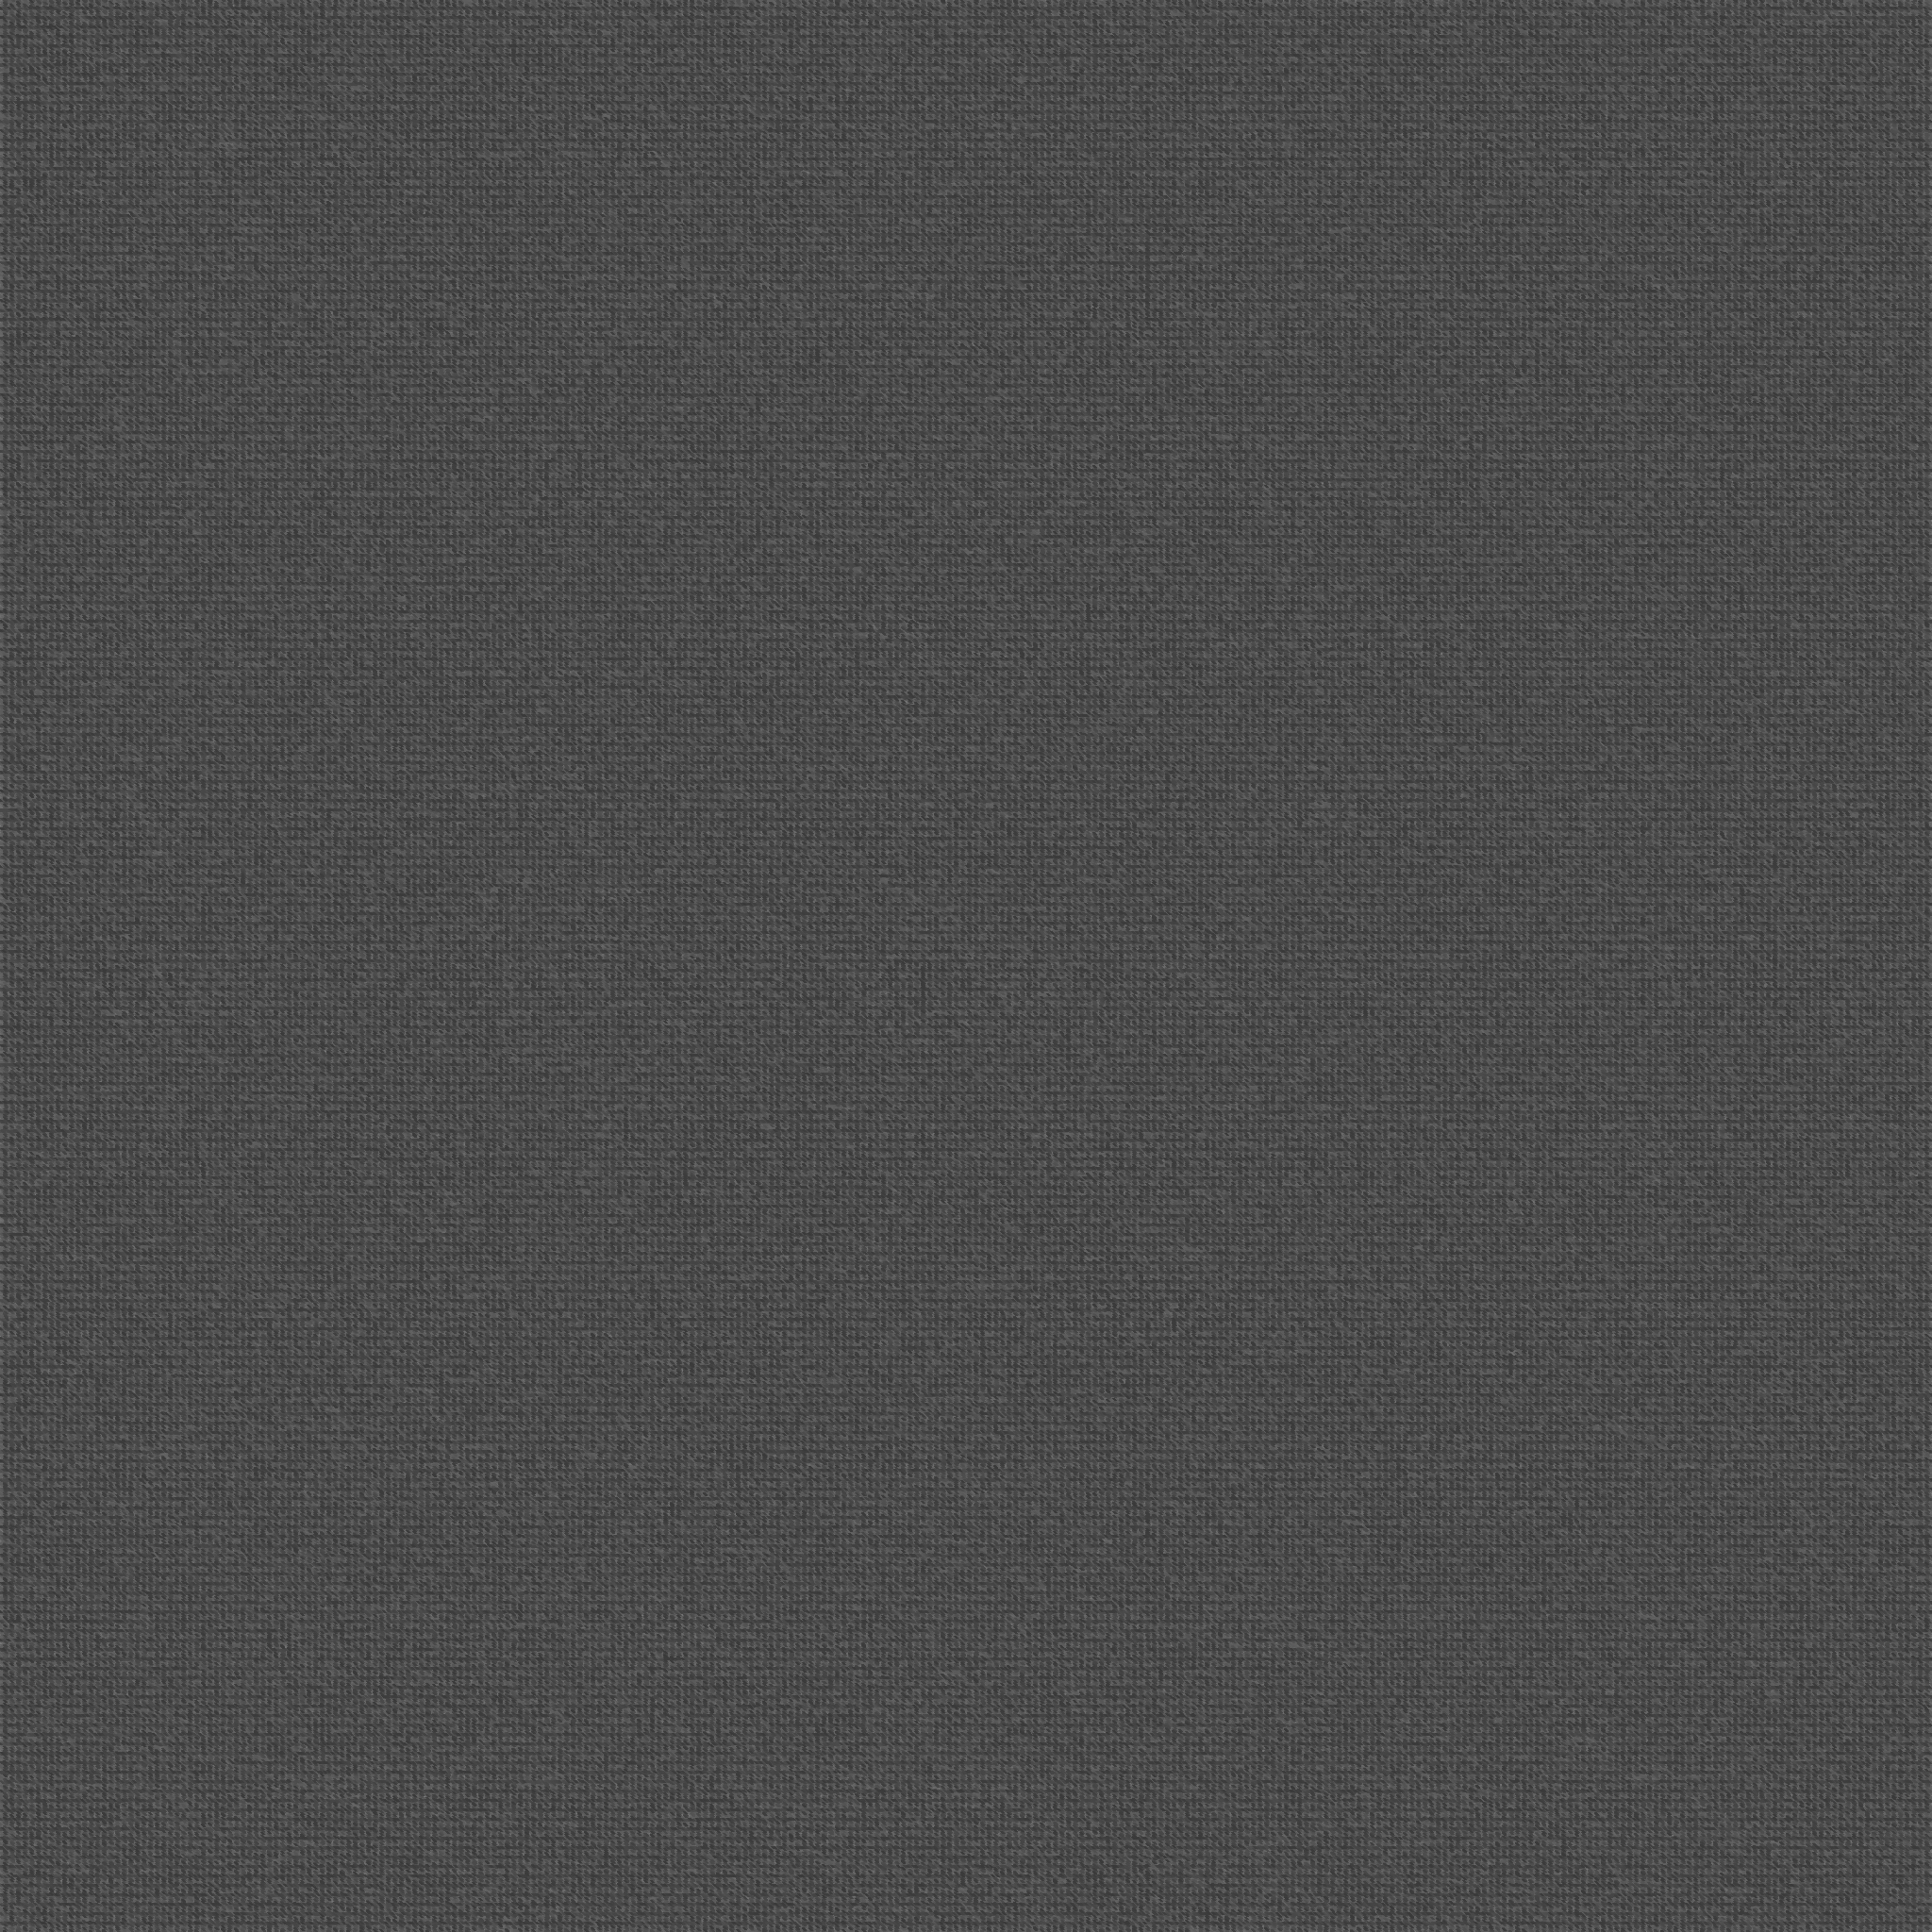 Gray Screen Off Lcd Screen Texture 2048x2048 By Fabooguy On Deviantart